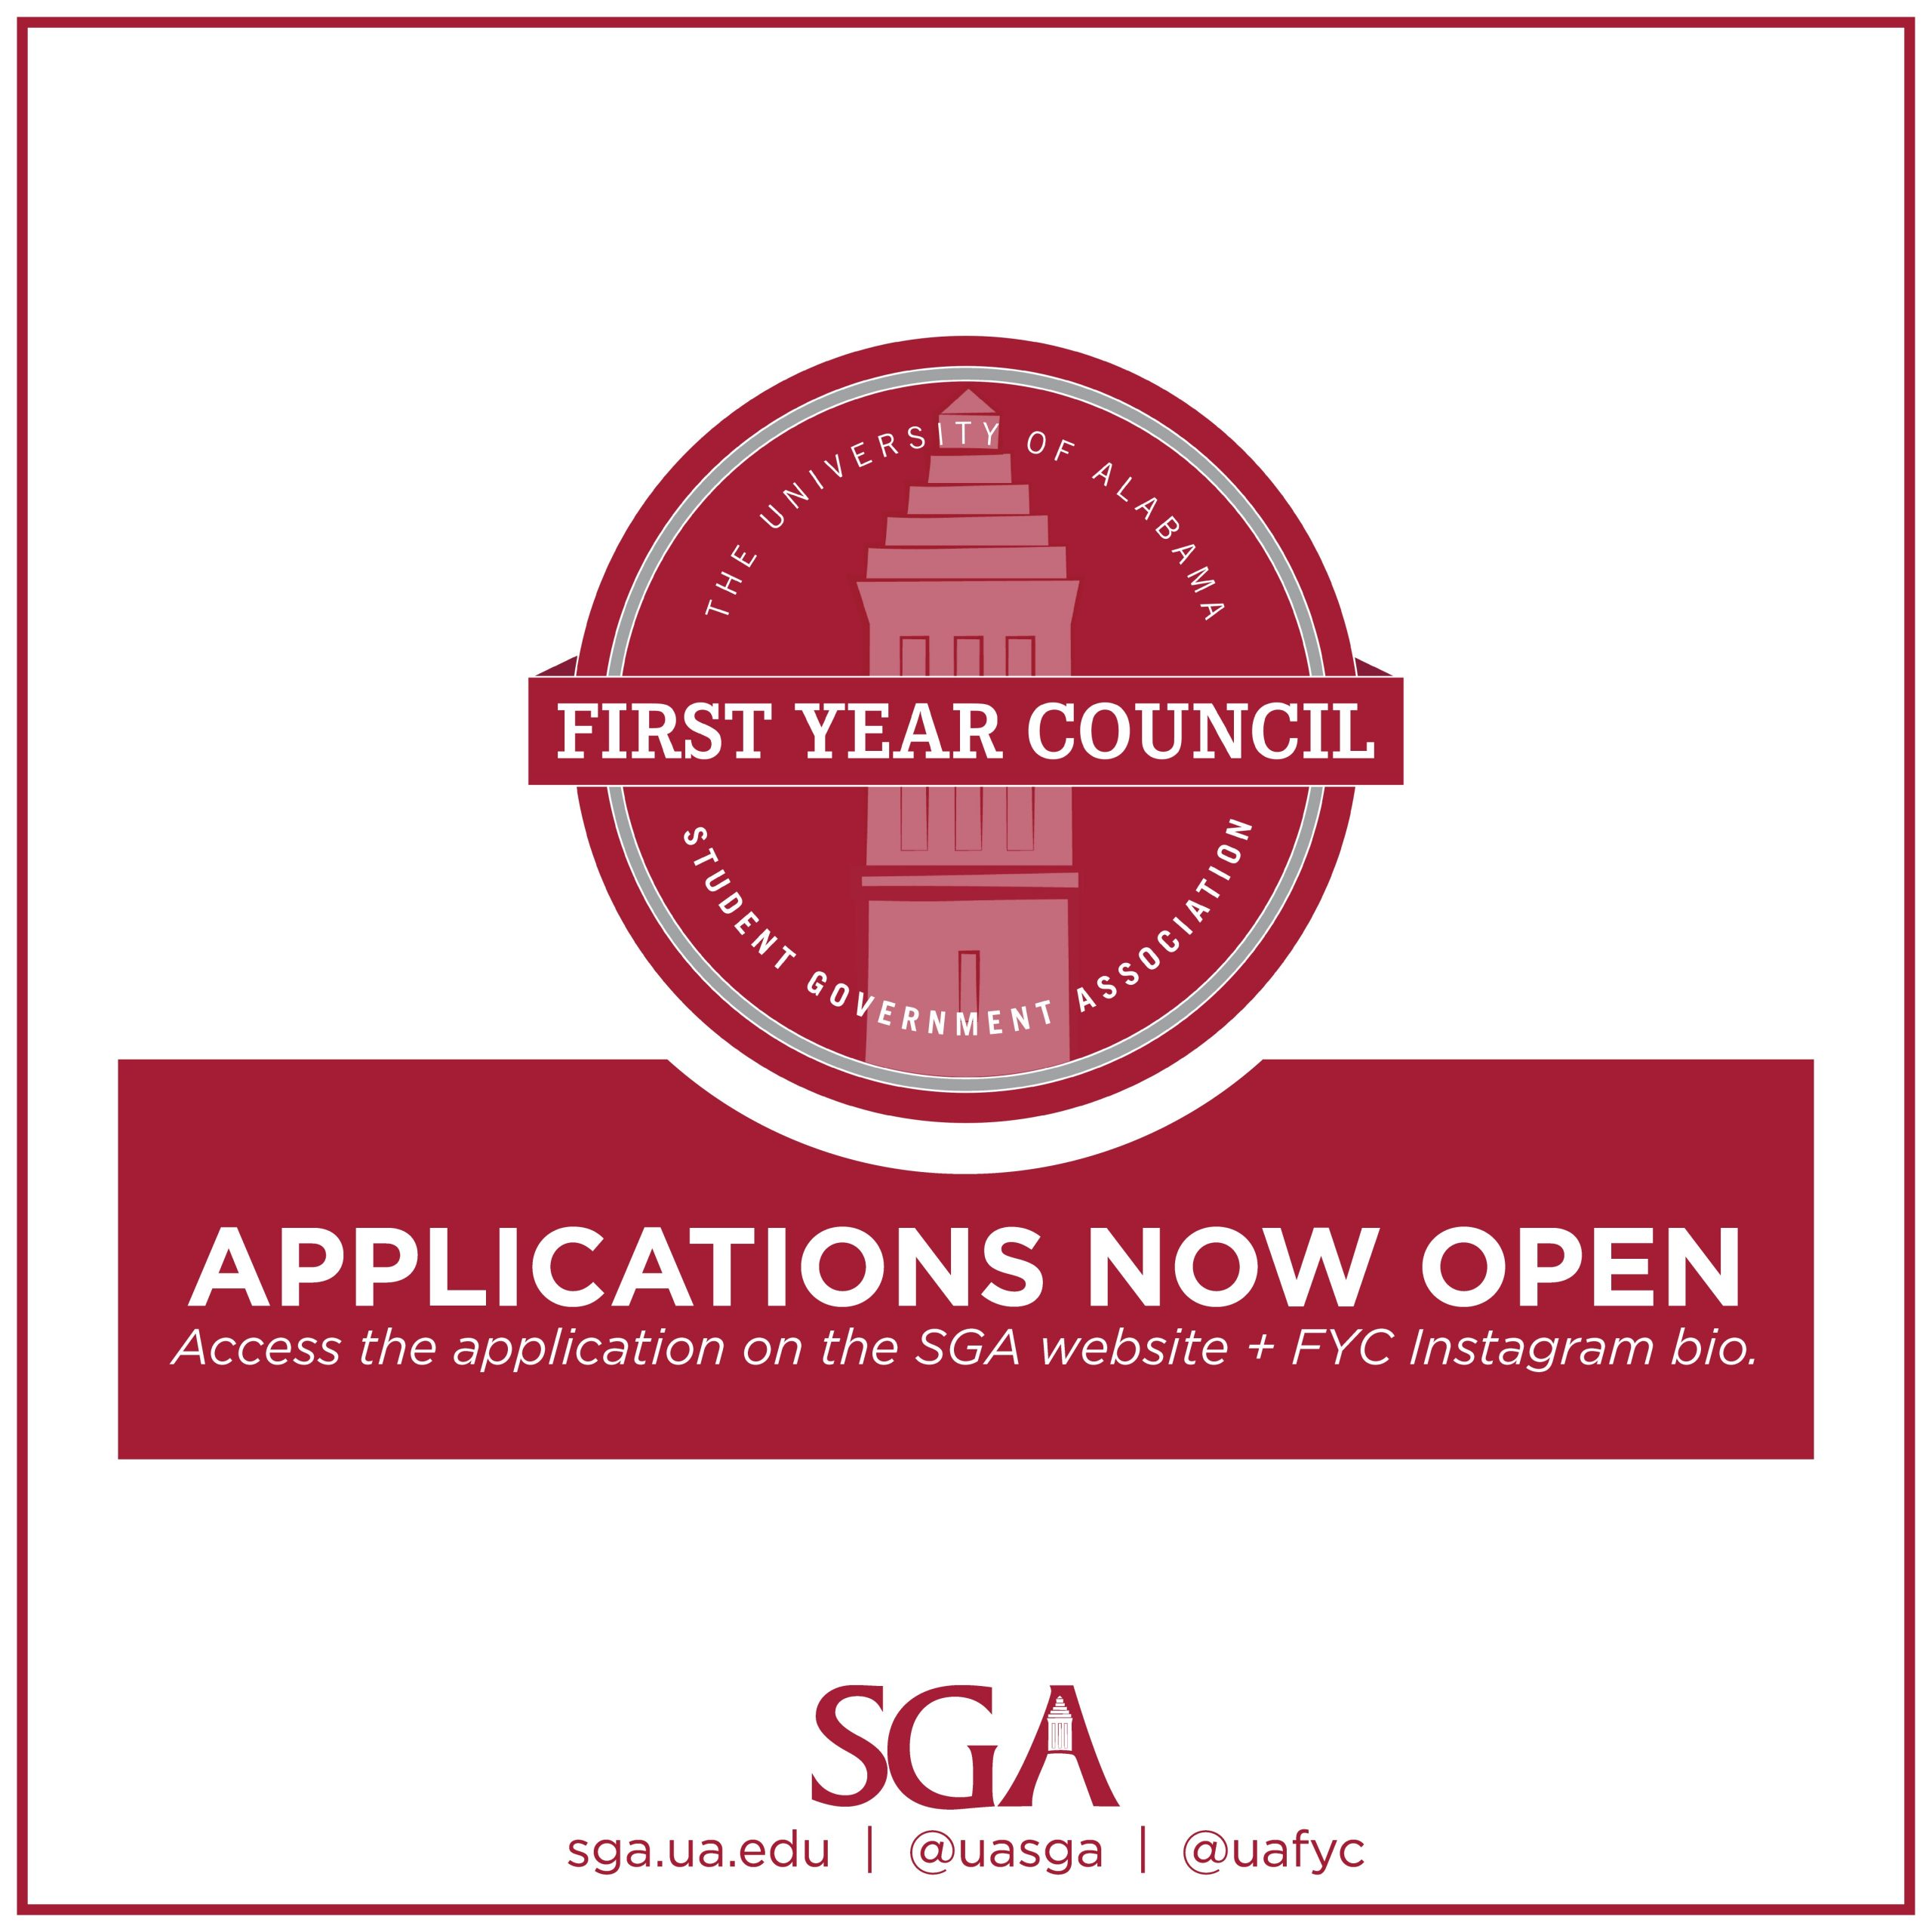 First Year Council 2020 Applications are now open. Access the application on the SGA website and FYC Instagram bio